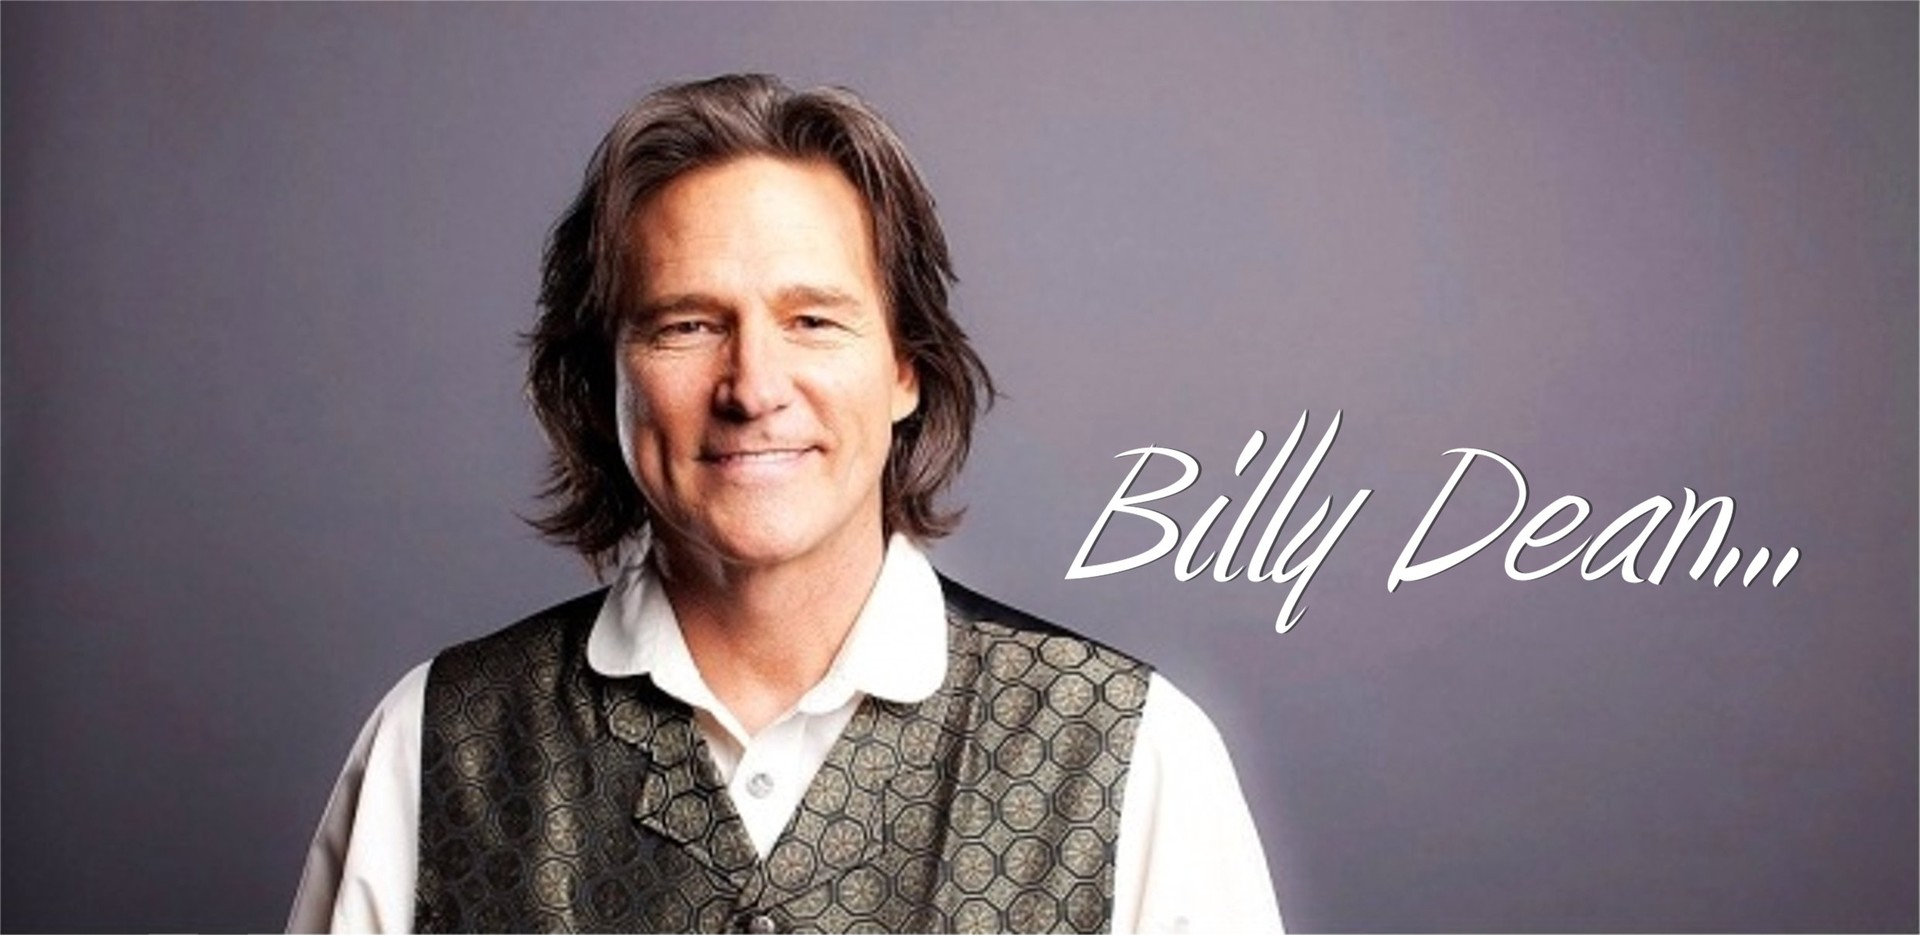 Strictly Country Magazine's Billy Dean Title